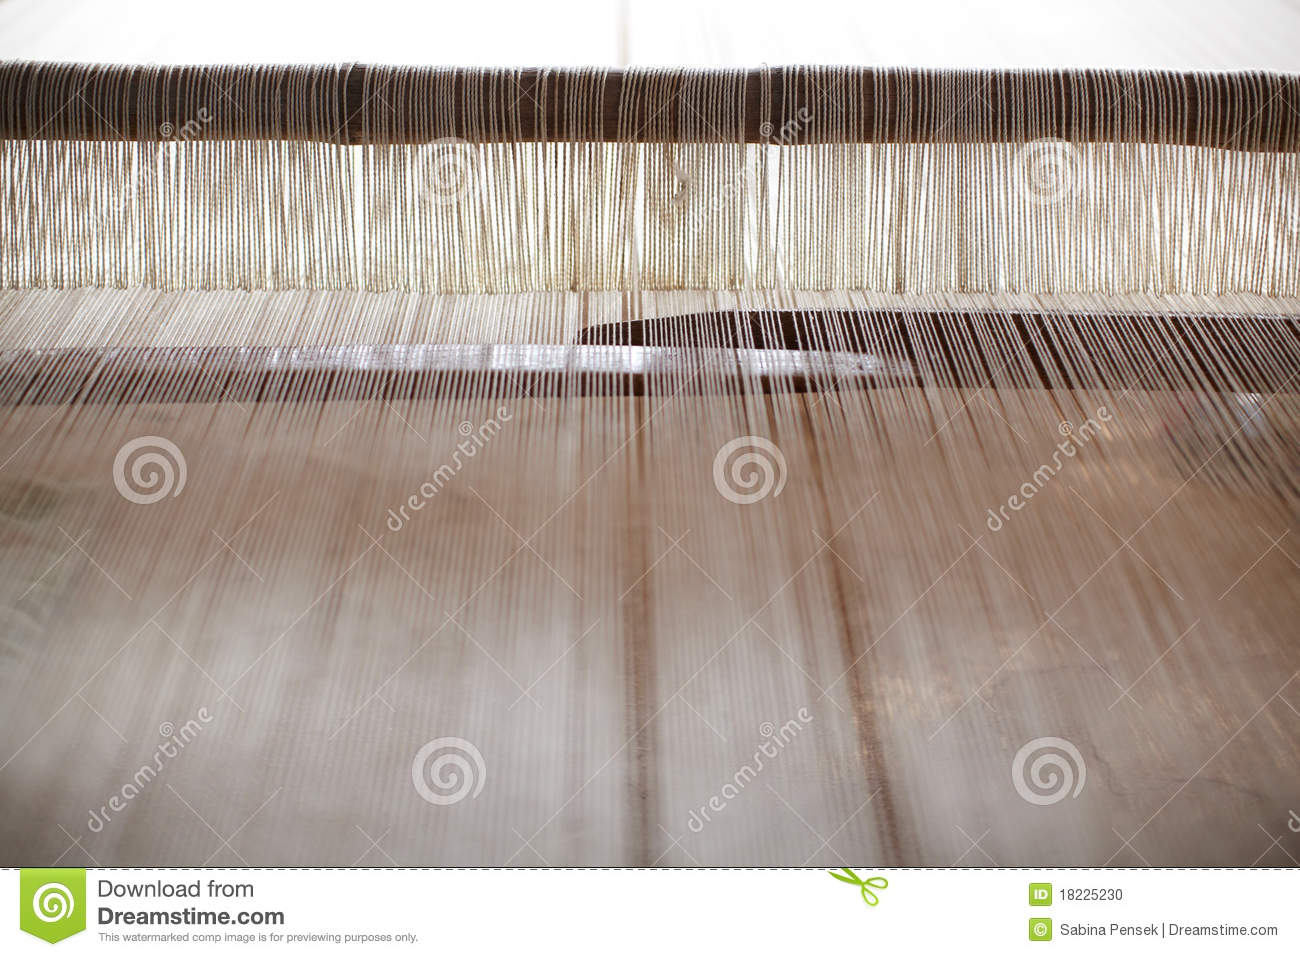 Jacquard Loom For Hand Weaving With Woolen Threads Stock Photo.